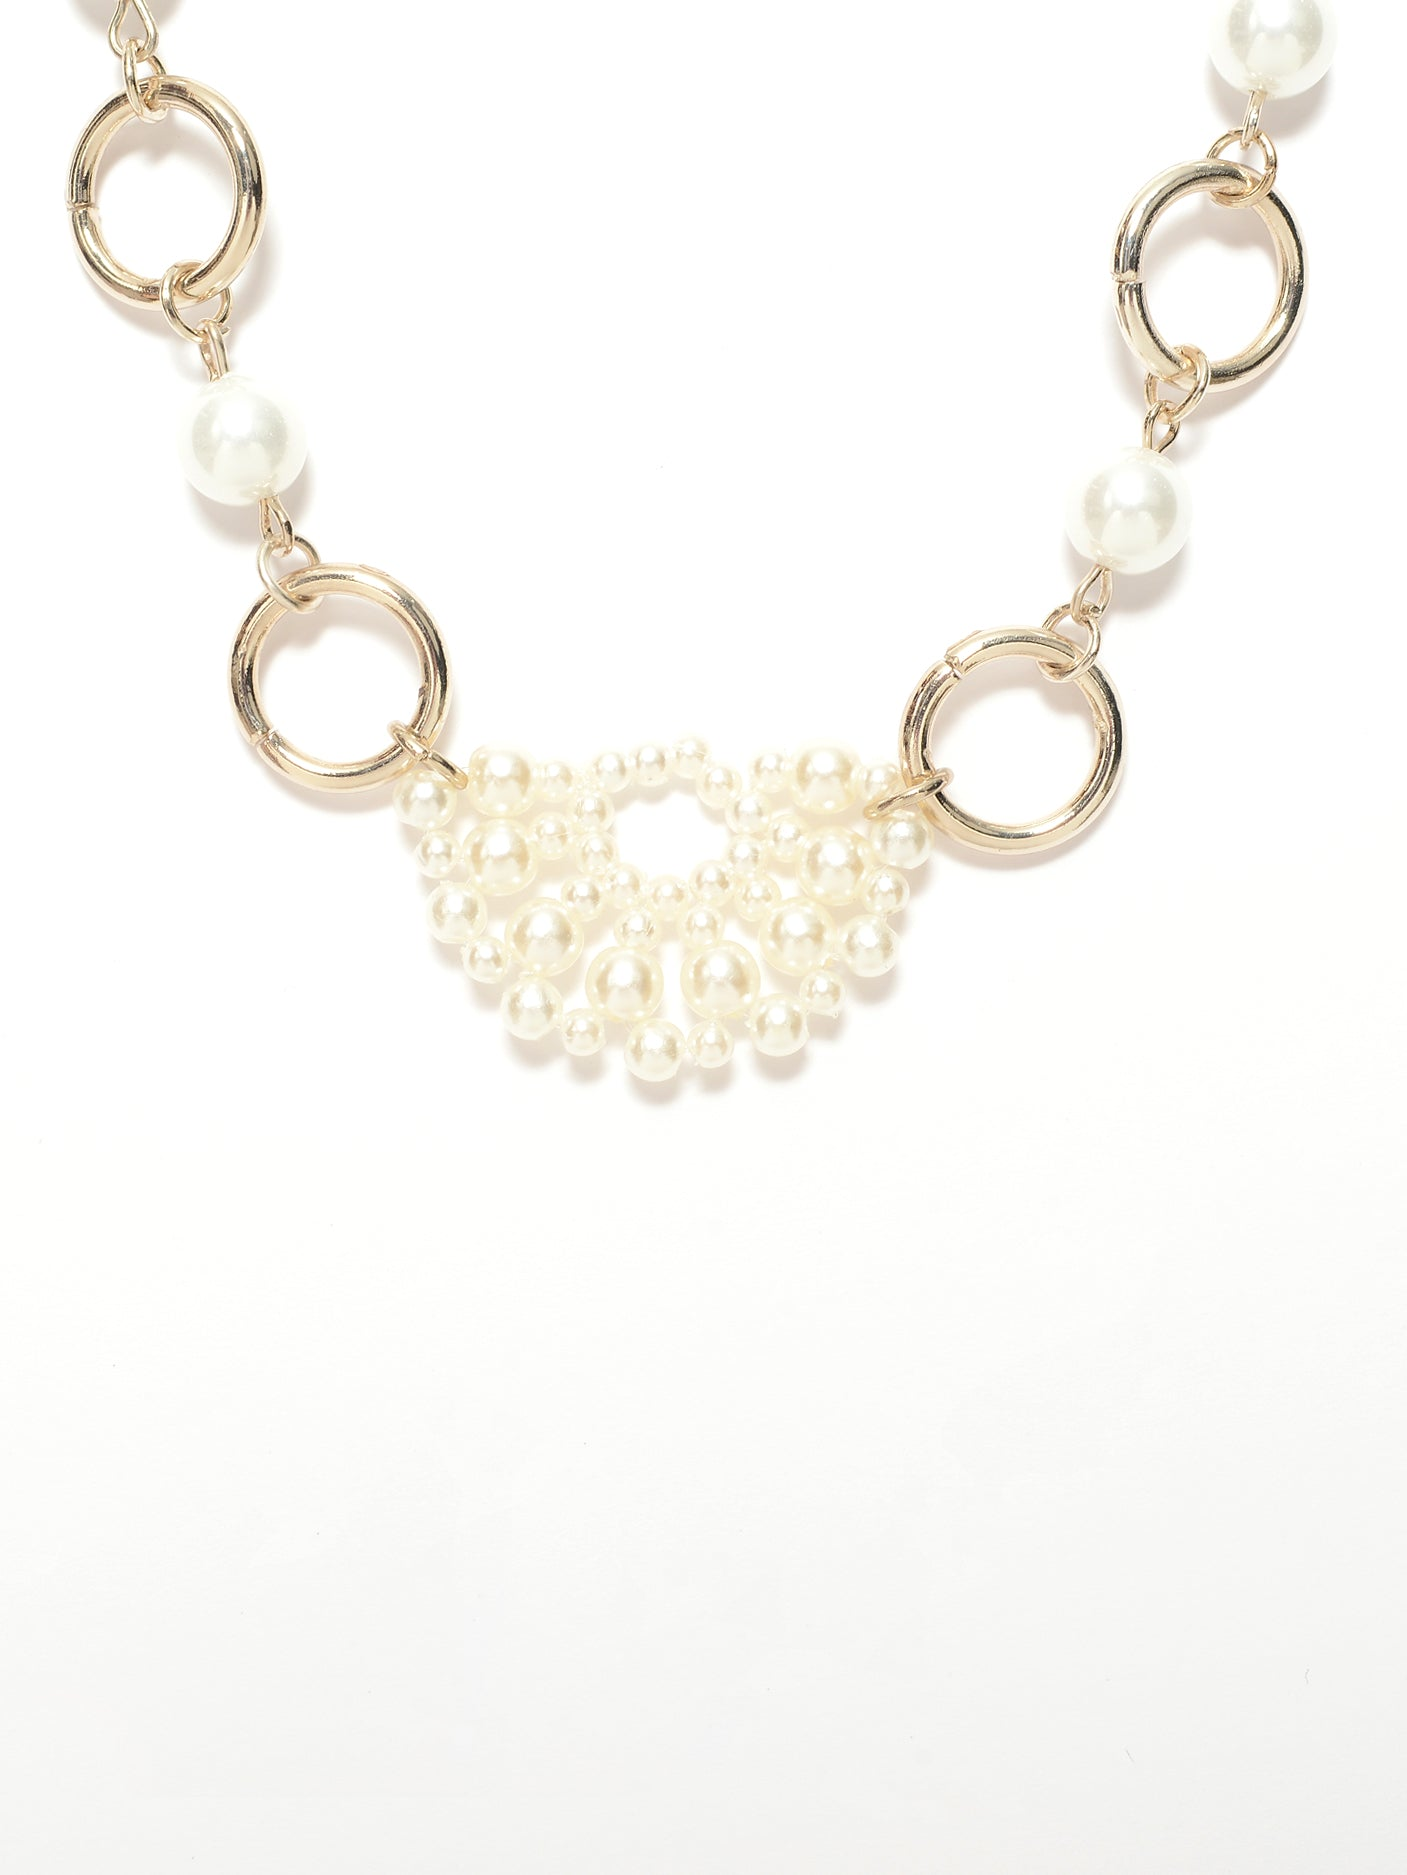 Pearl Rings Necklace